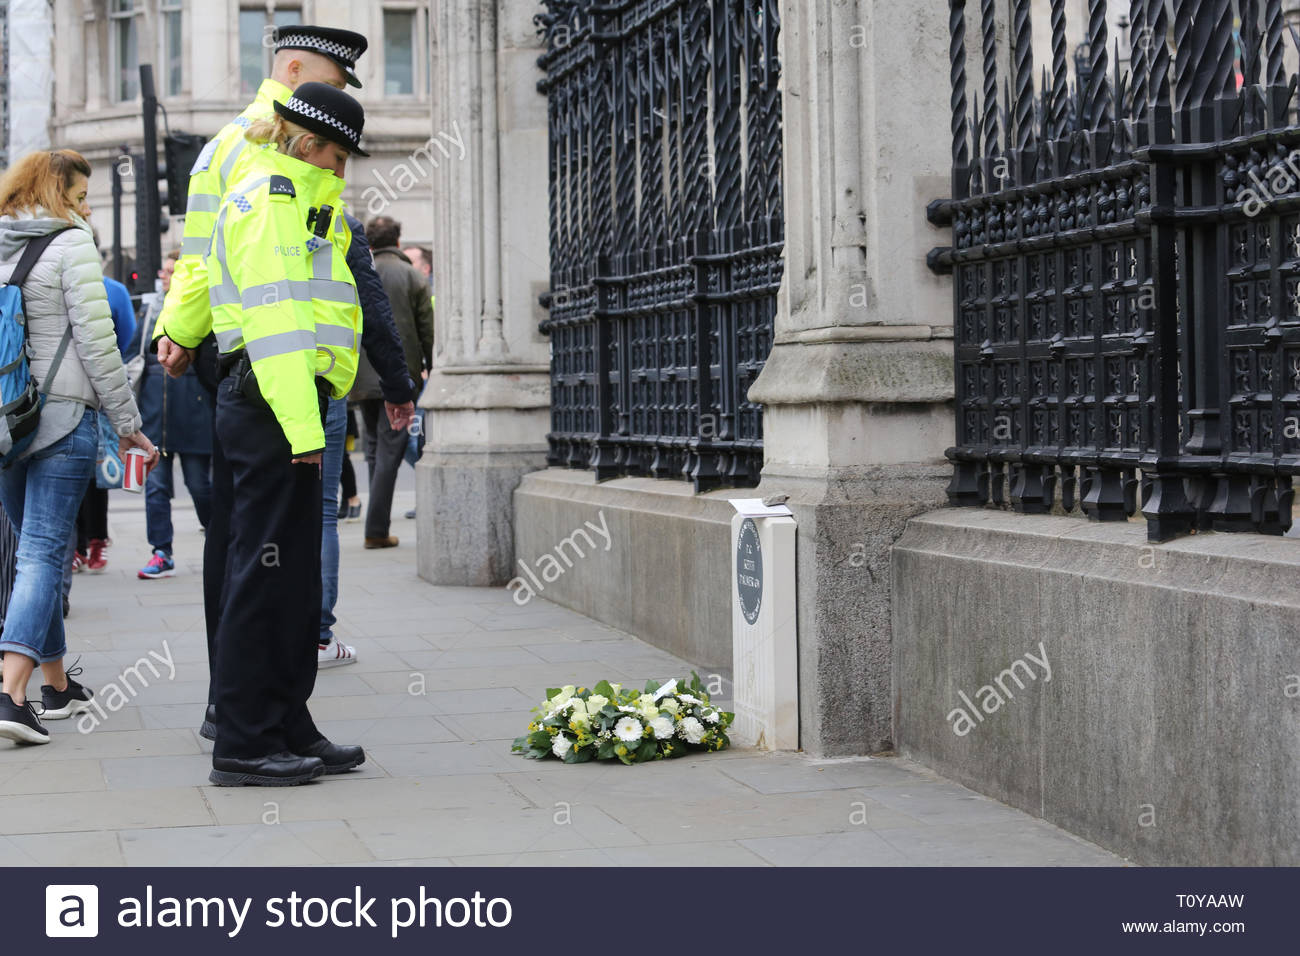 London, UK. 22nd Mar, 2019. Police constables pause at the memorial to PC Keith Palmer in Westminster. Today is the second anniversary of his death which occurred during the attack on London Bridge and fresh flowers have been placed there. Credit: Clearpix/Alamy Live News - Stock Image